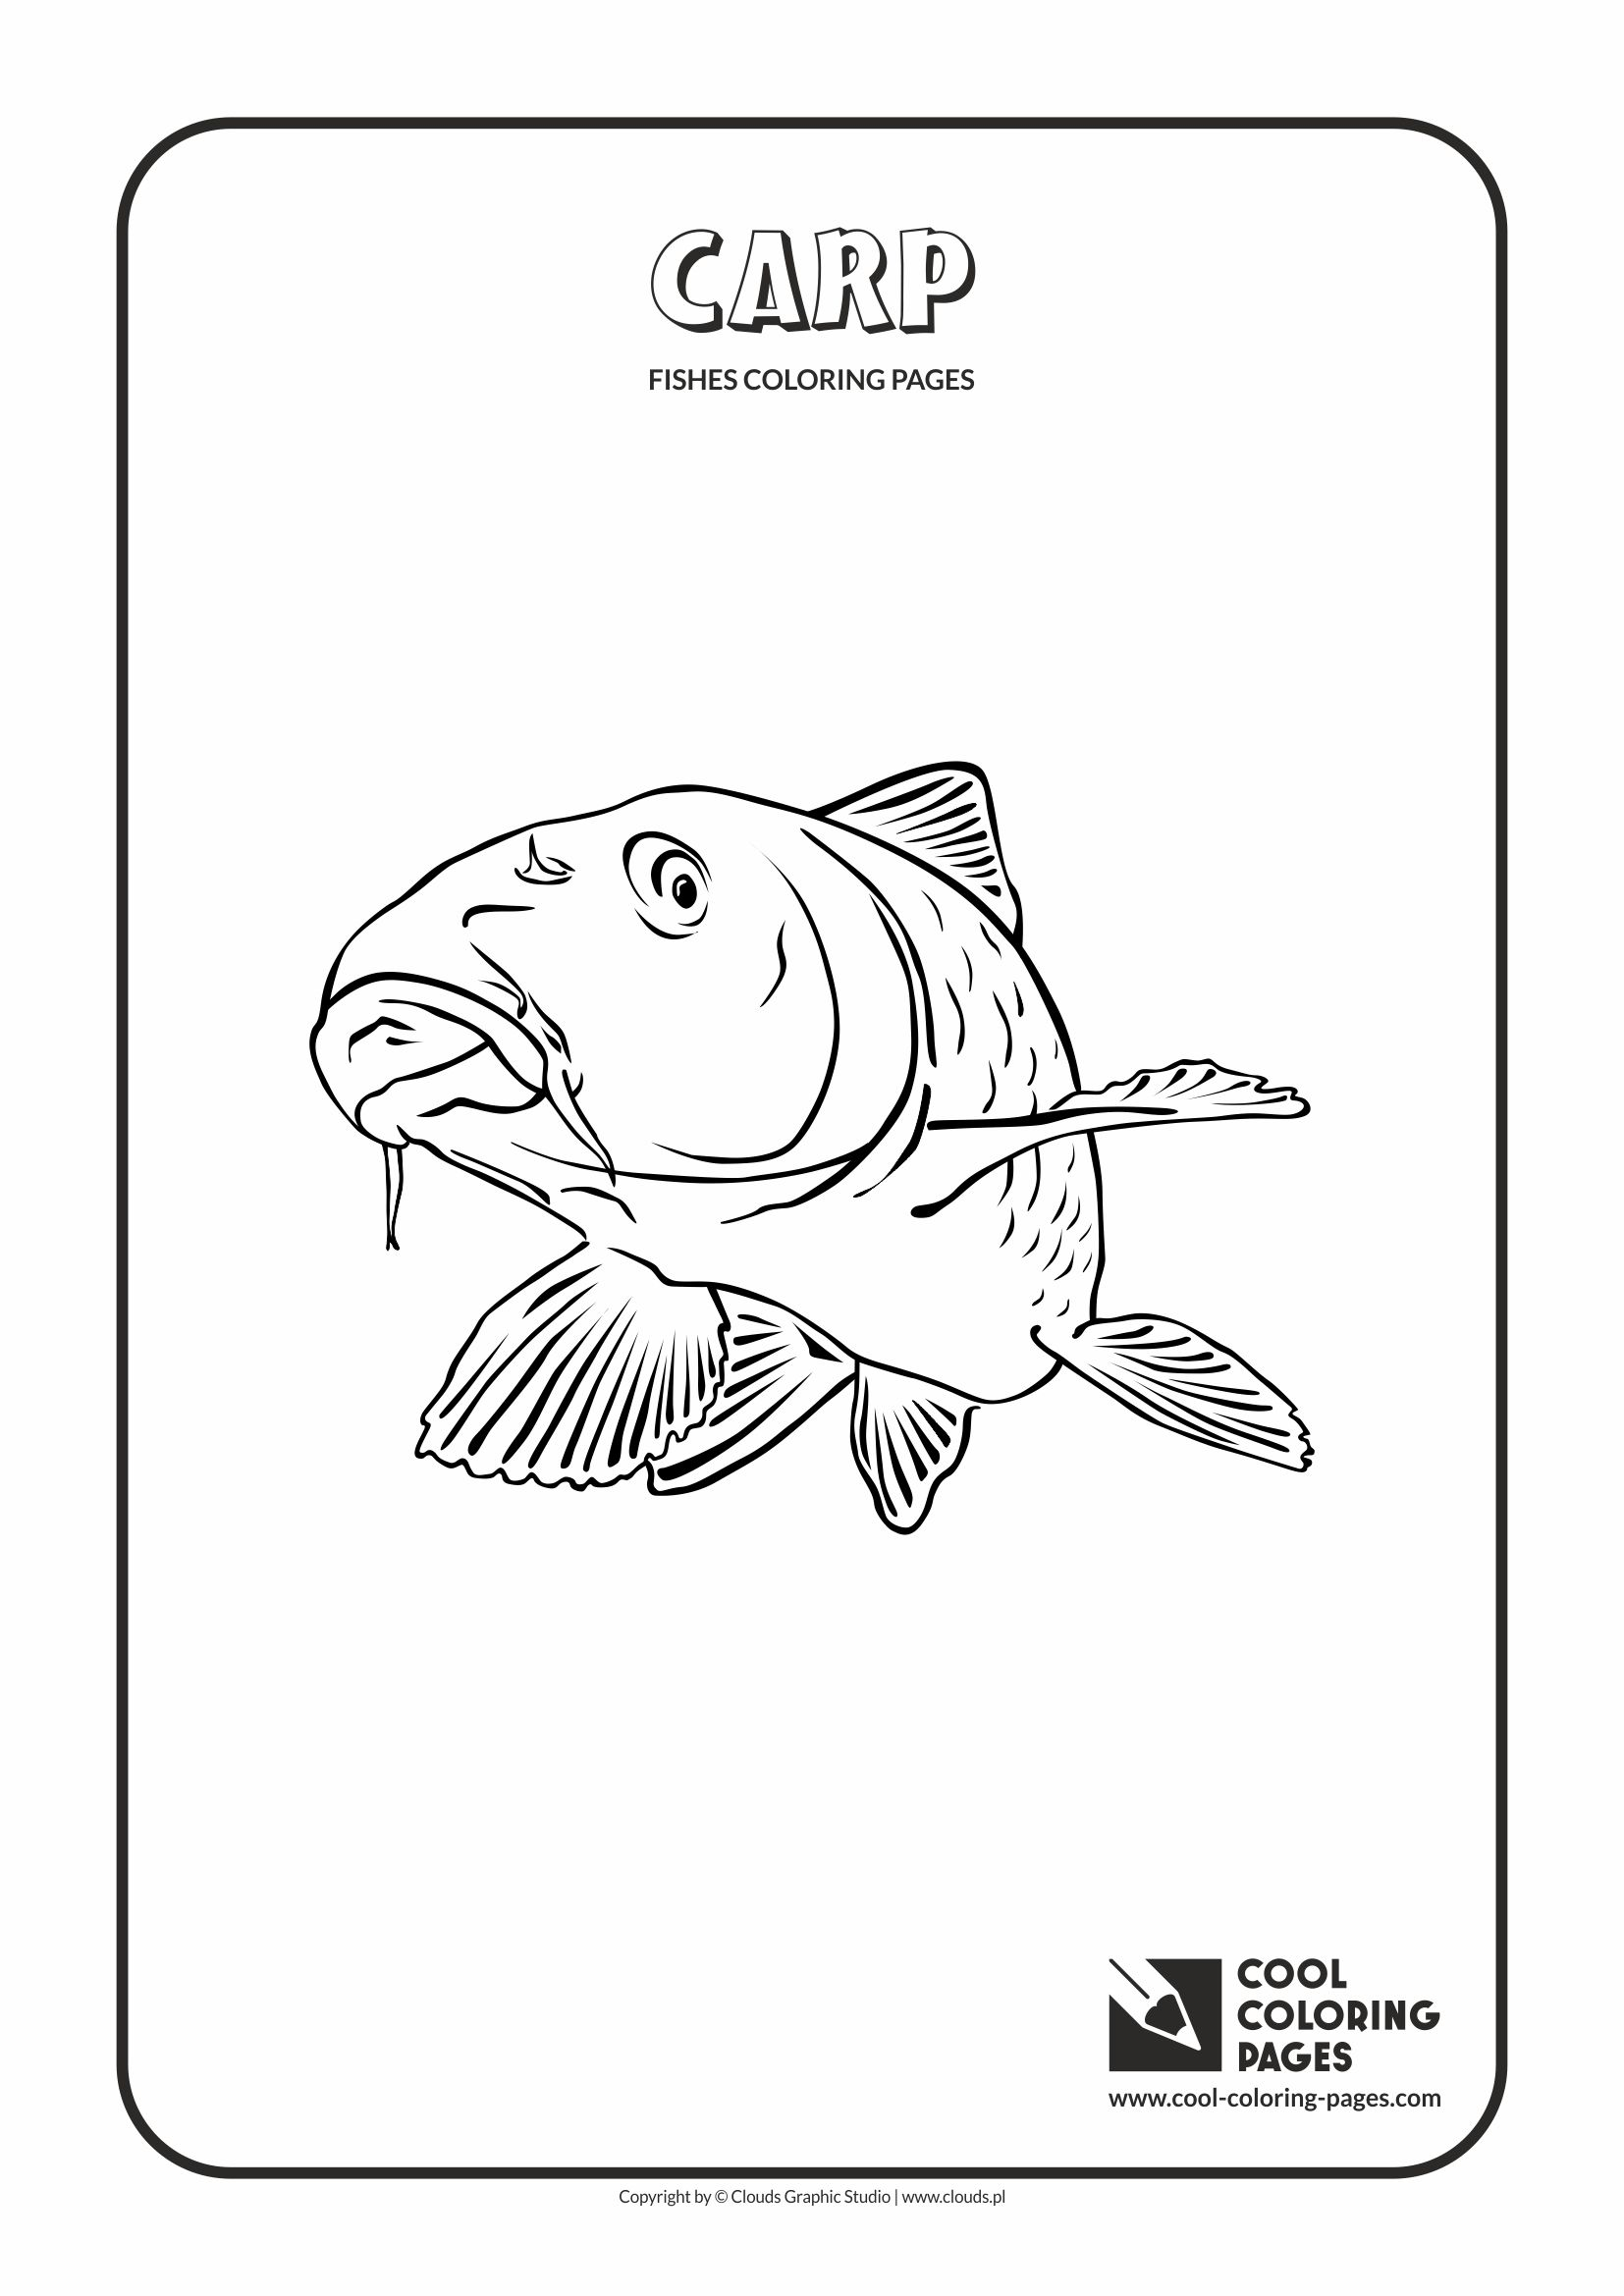 Cool Coloring Pages - Animals / Carp / Coloring page with carp